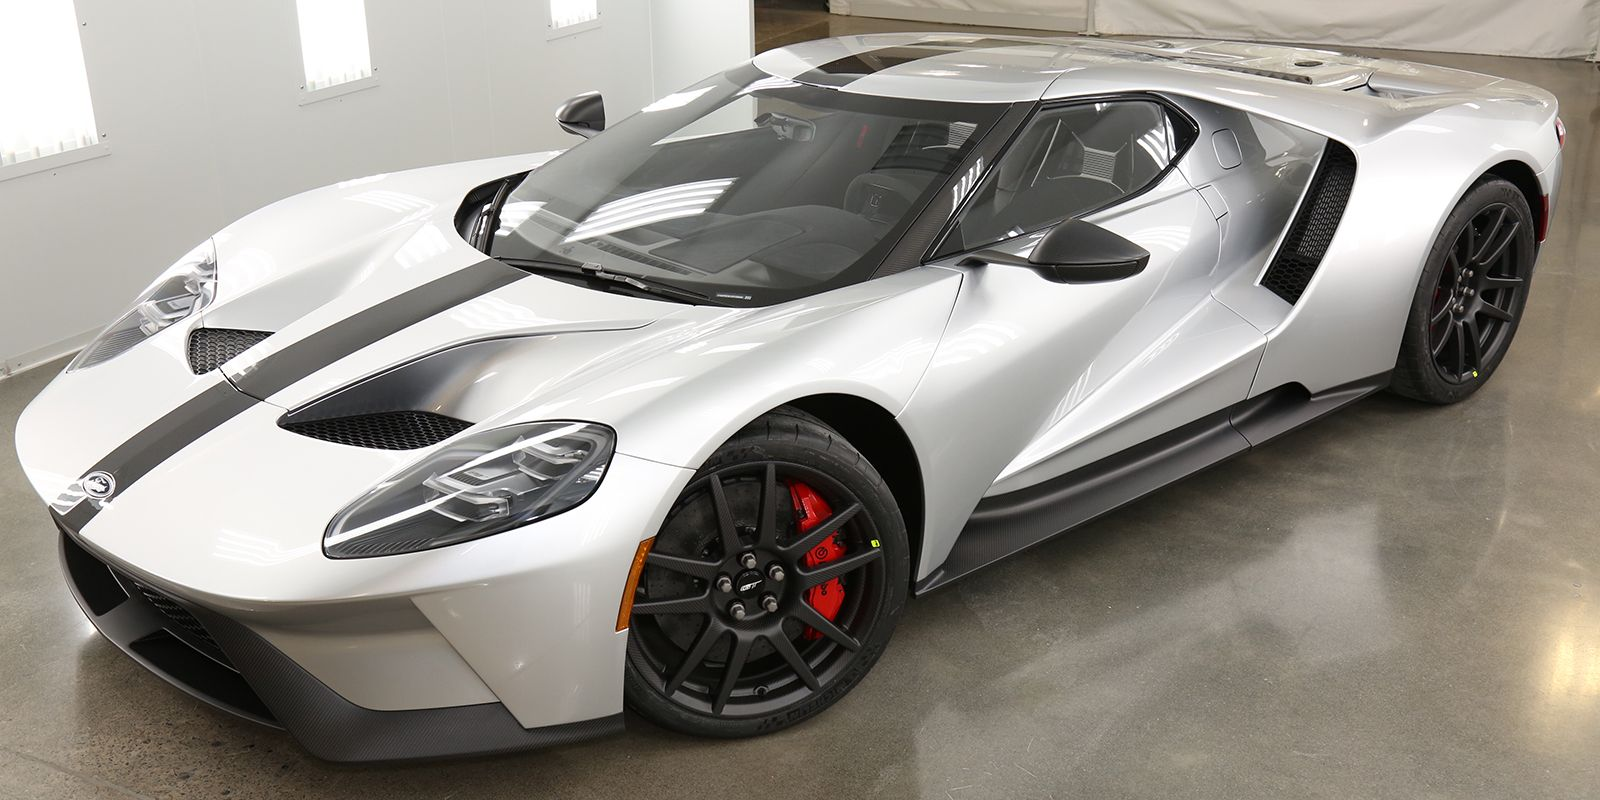 New ford gt competition series shaves weight by dropping luxuries